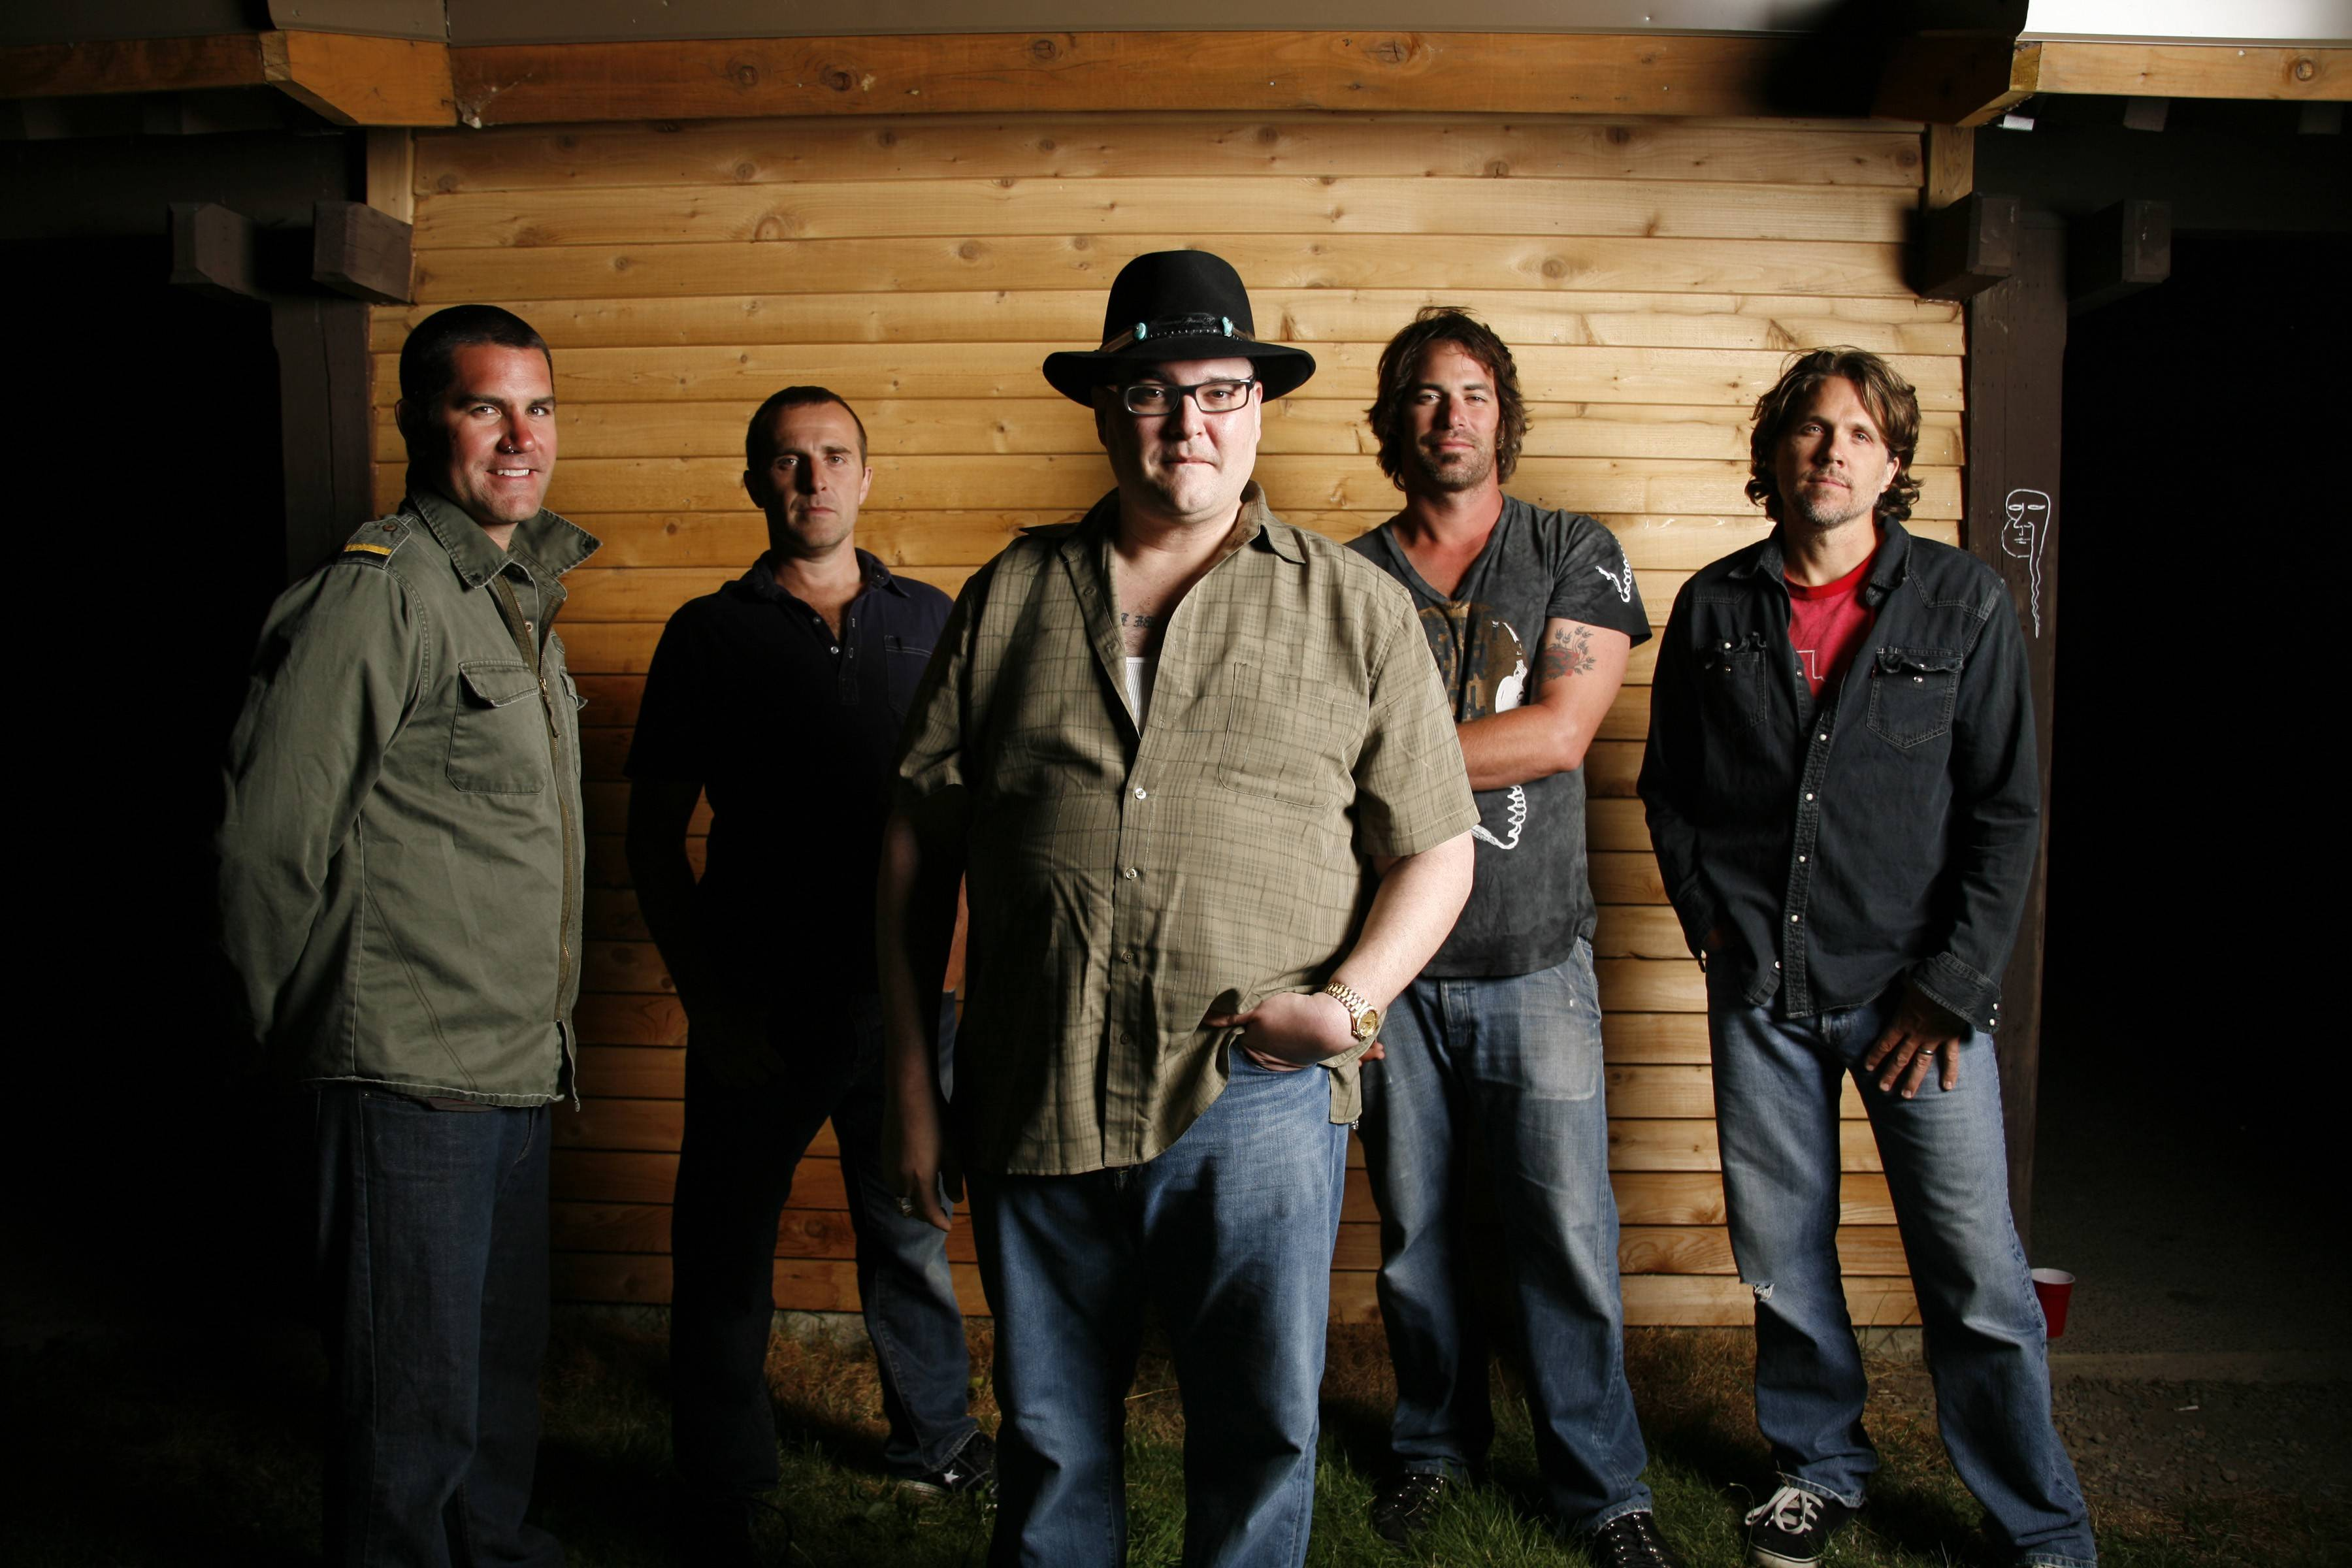 Blues Traveler plays RiverEdge Park in Aurora as part of the Under the Sun Tour on Sunday, July 6.